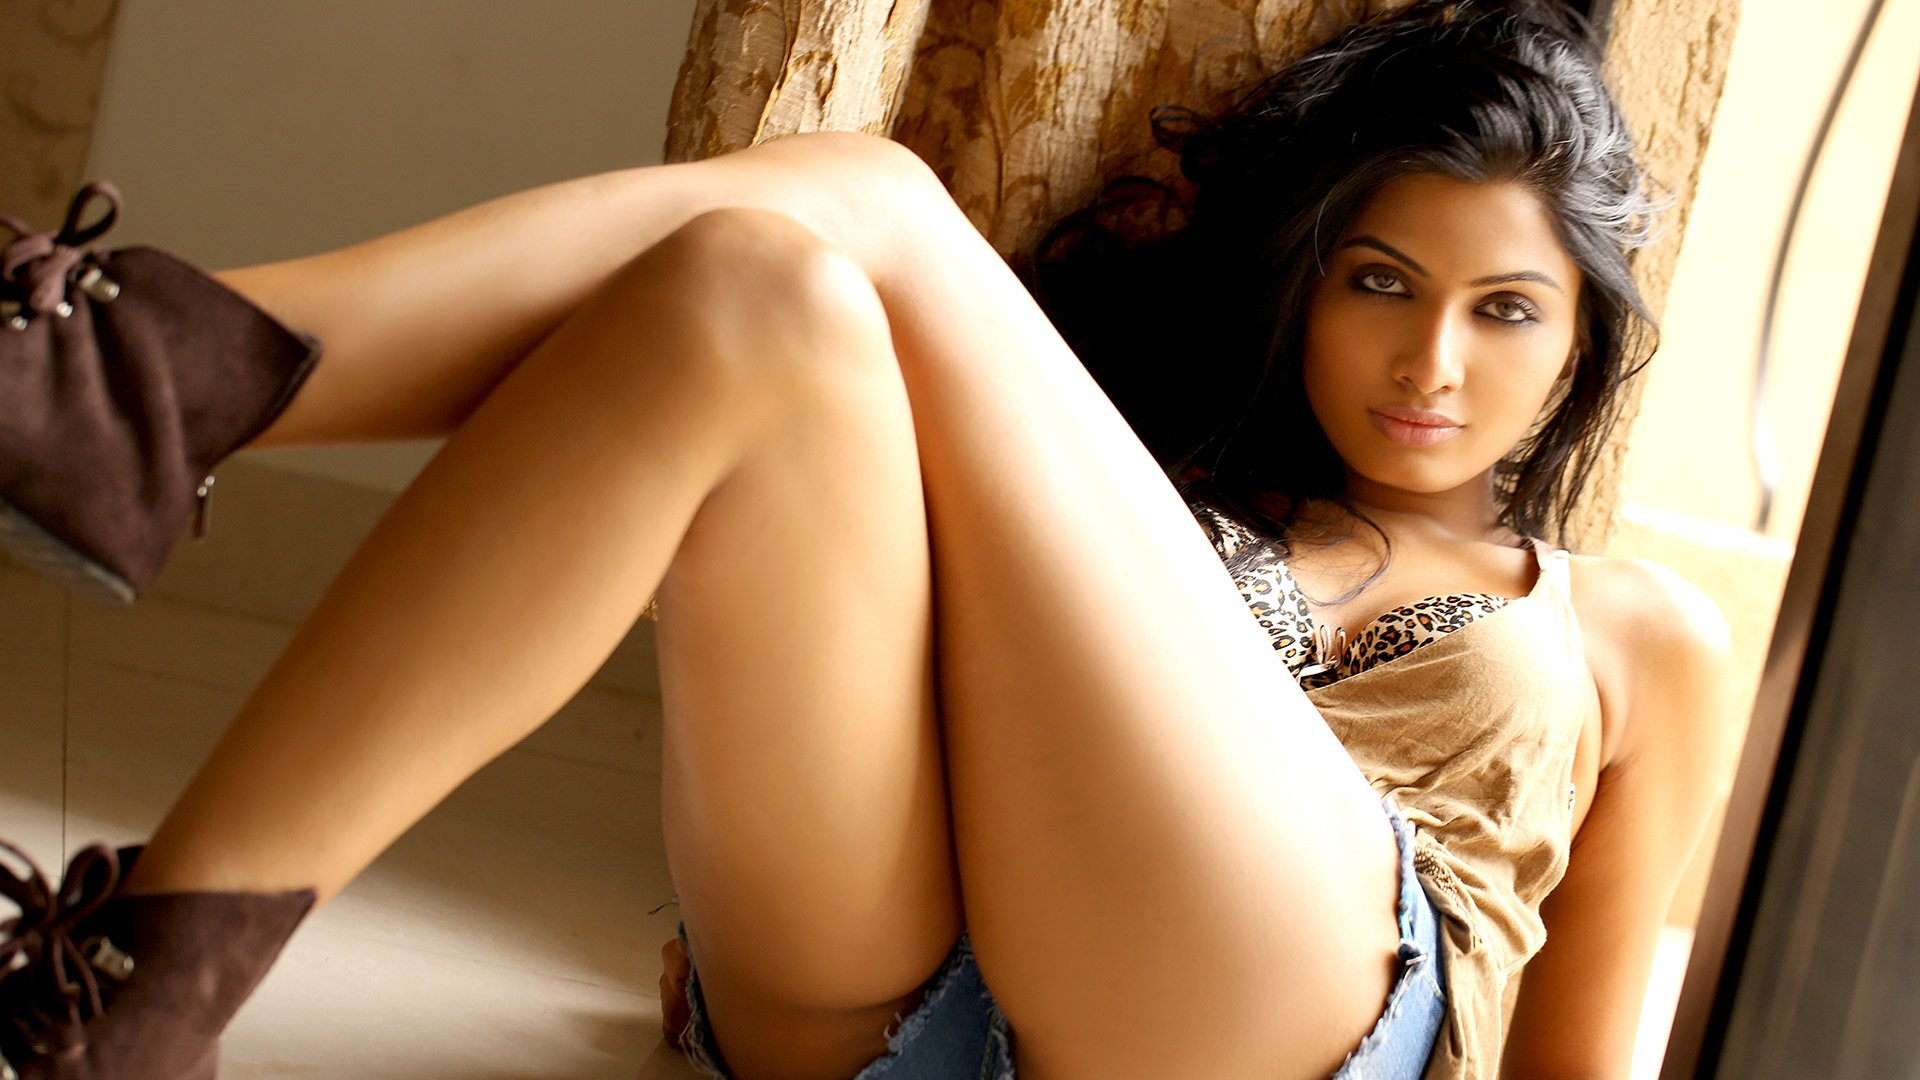 indian small hot school girls photos